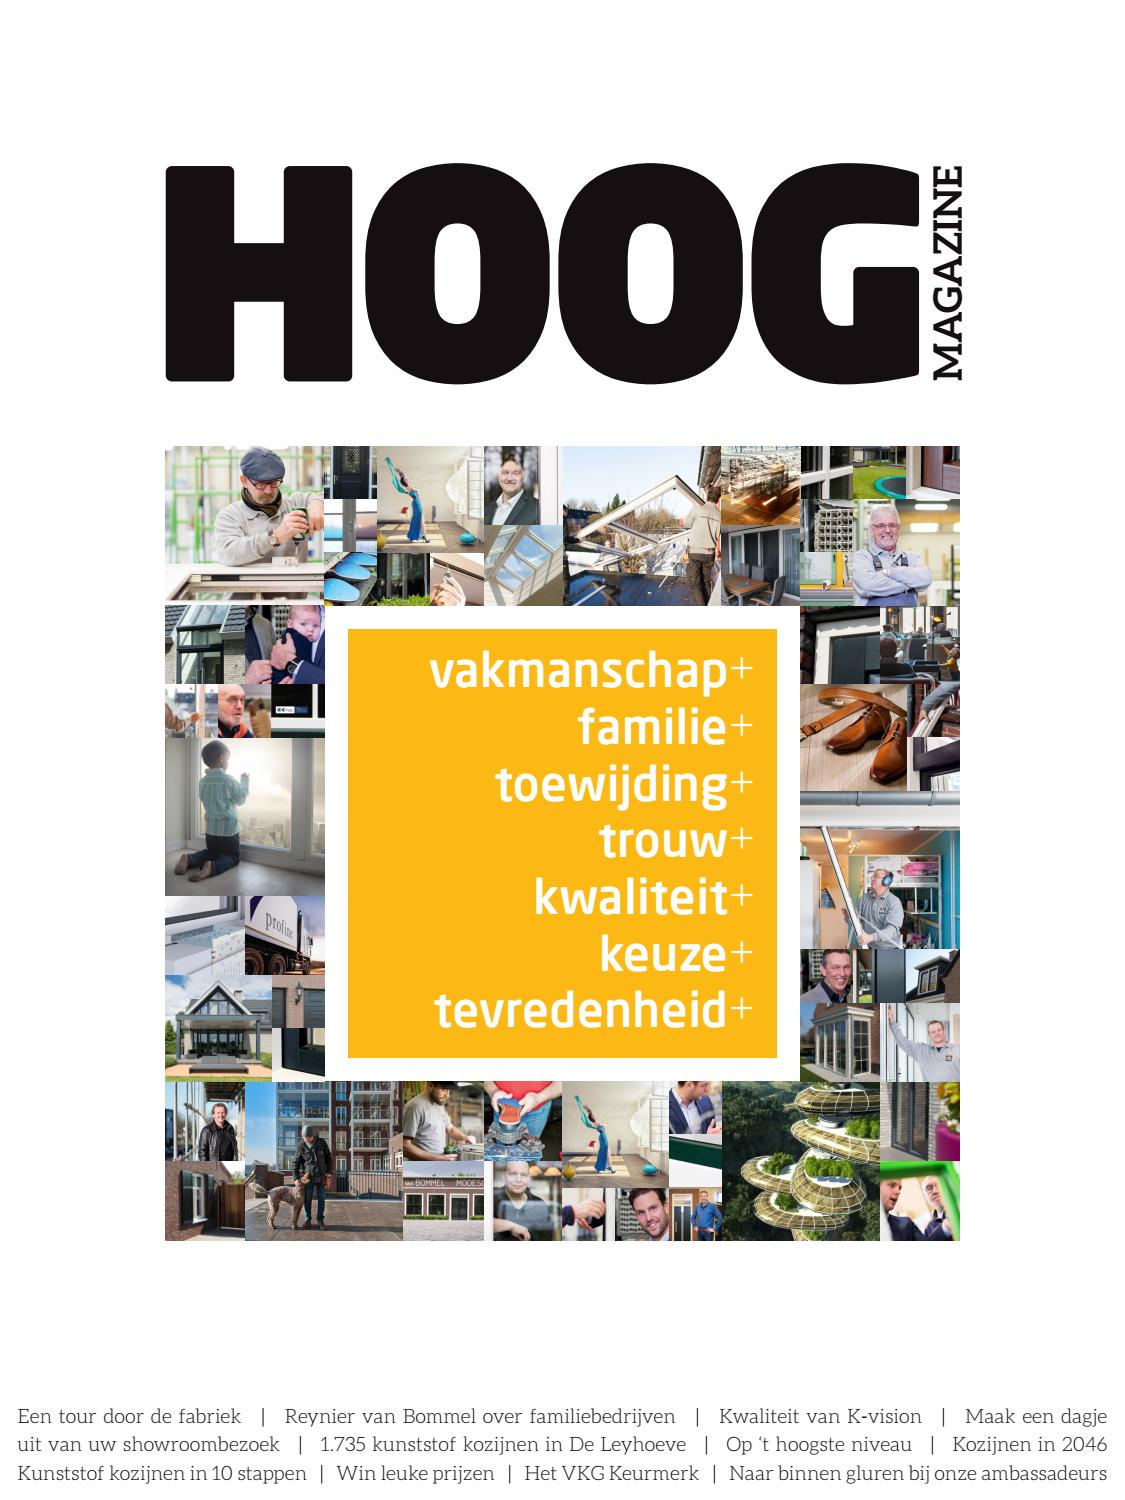 Ramenfabriek op 't hoog magazine by bureauzuid   issuu